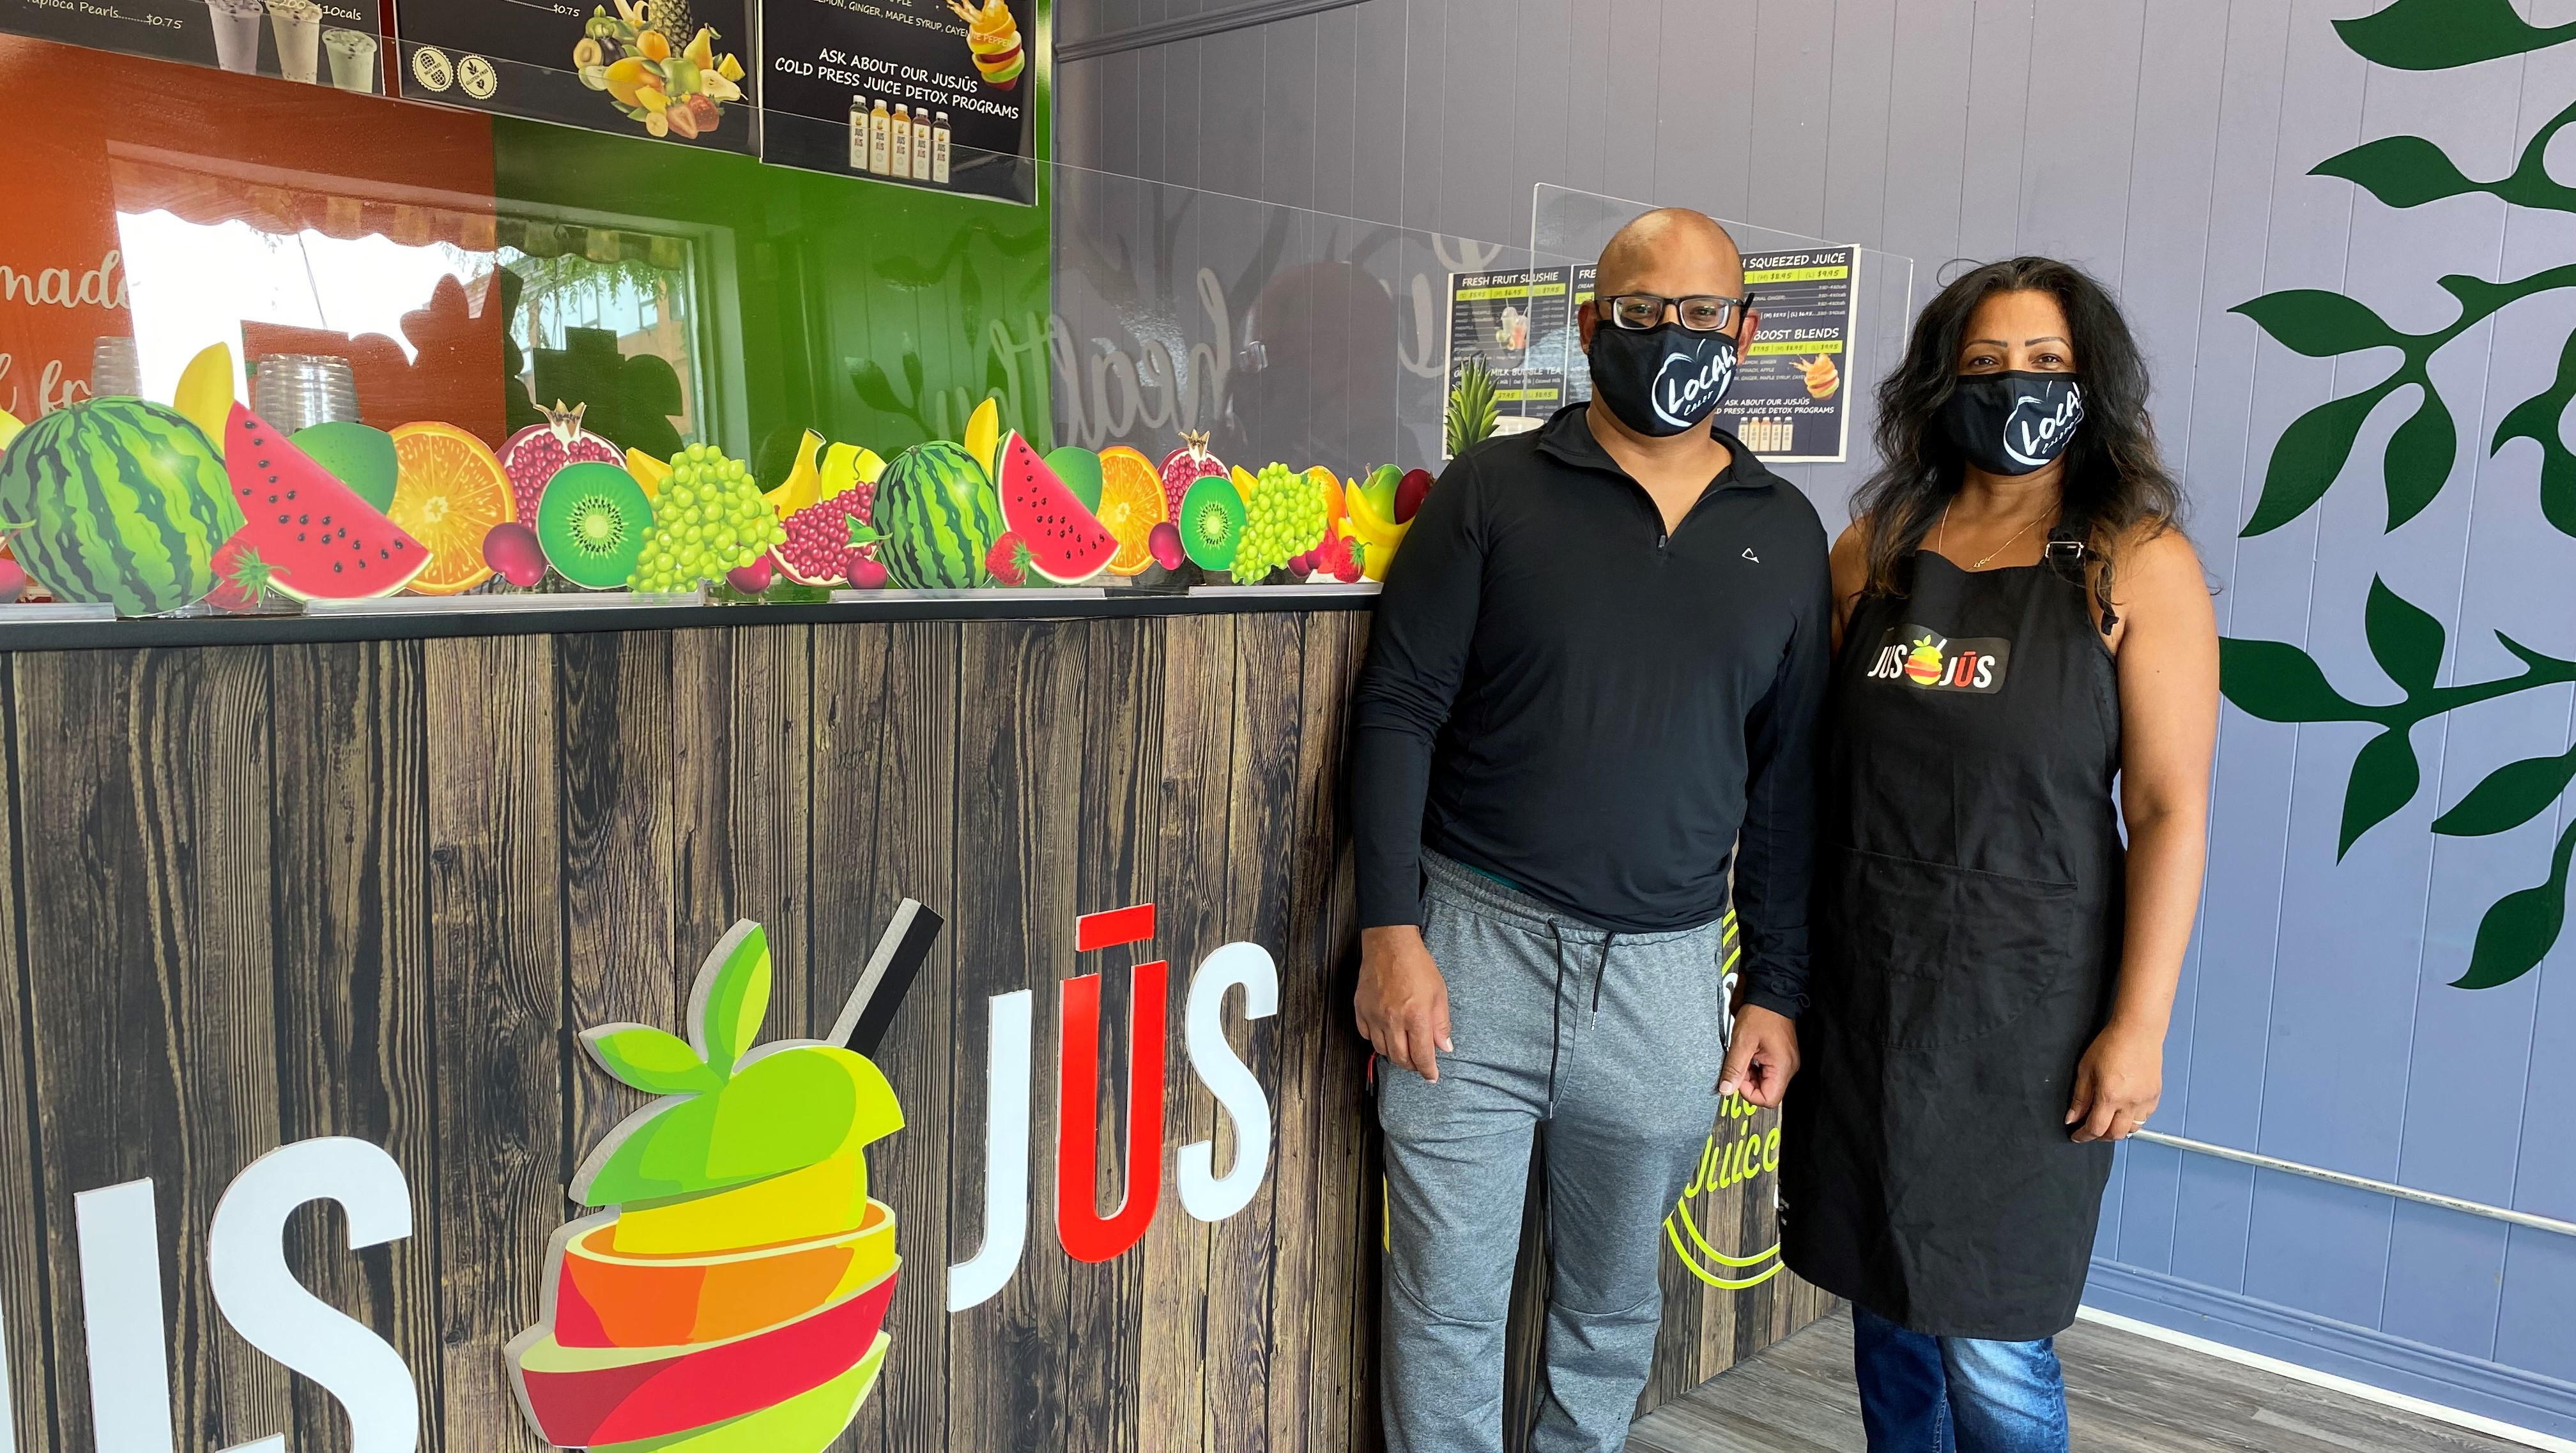 Kam and Suruj in their Jus Jus store